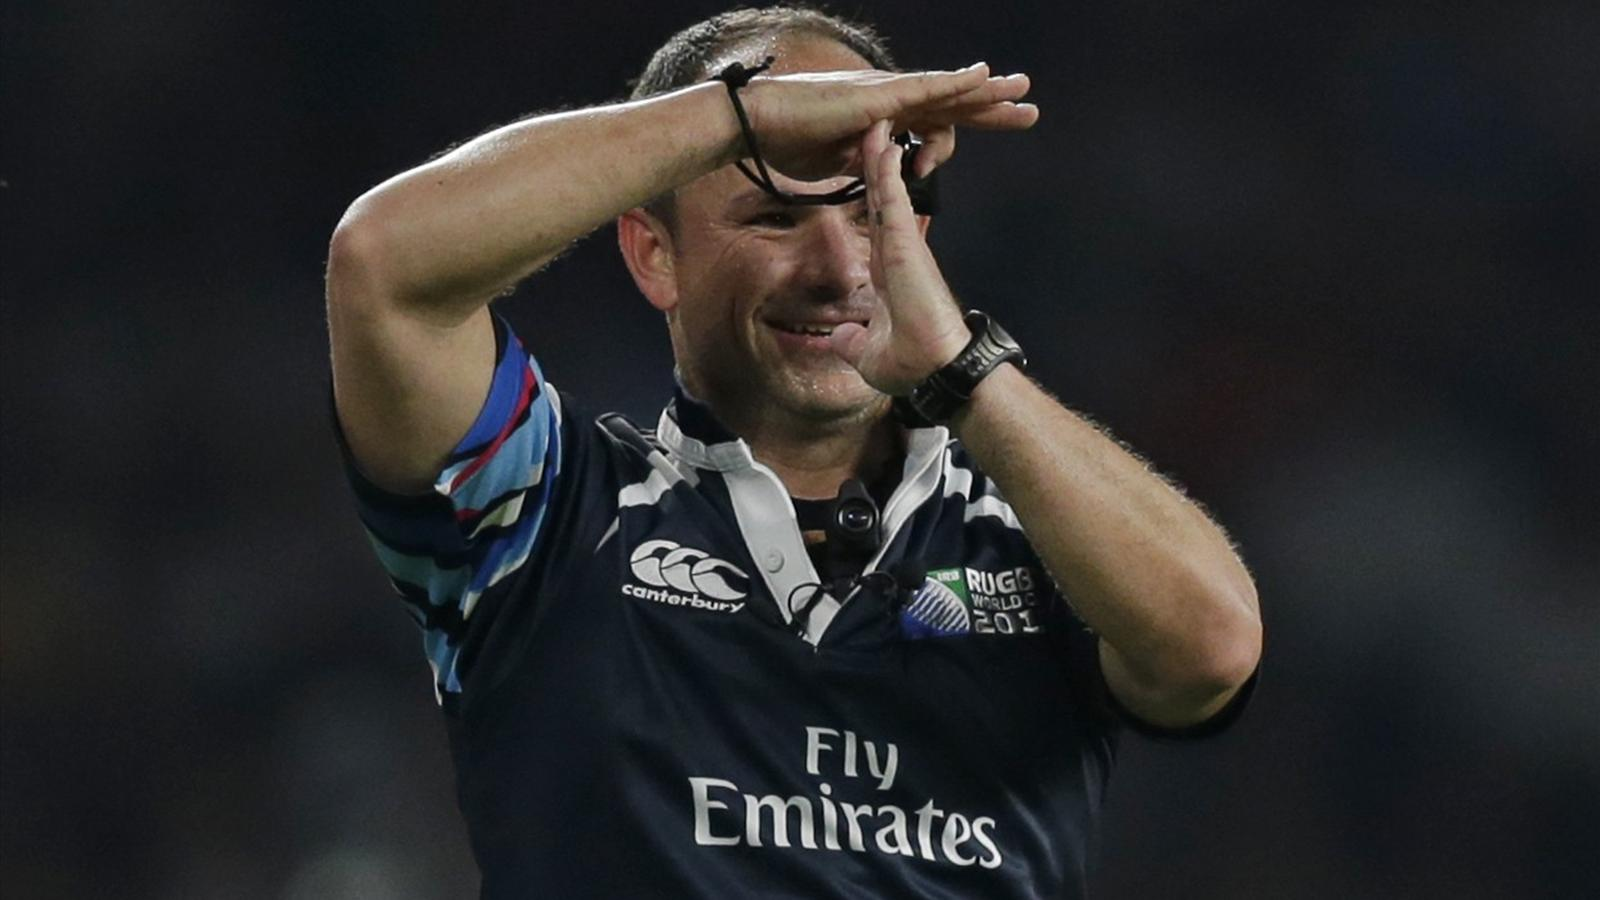 Referee Jaco Peyper during England's opening match of the Rugby World Cup against Fiji at Twickenham